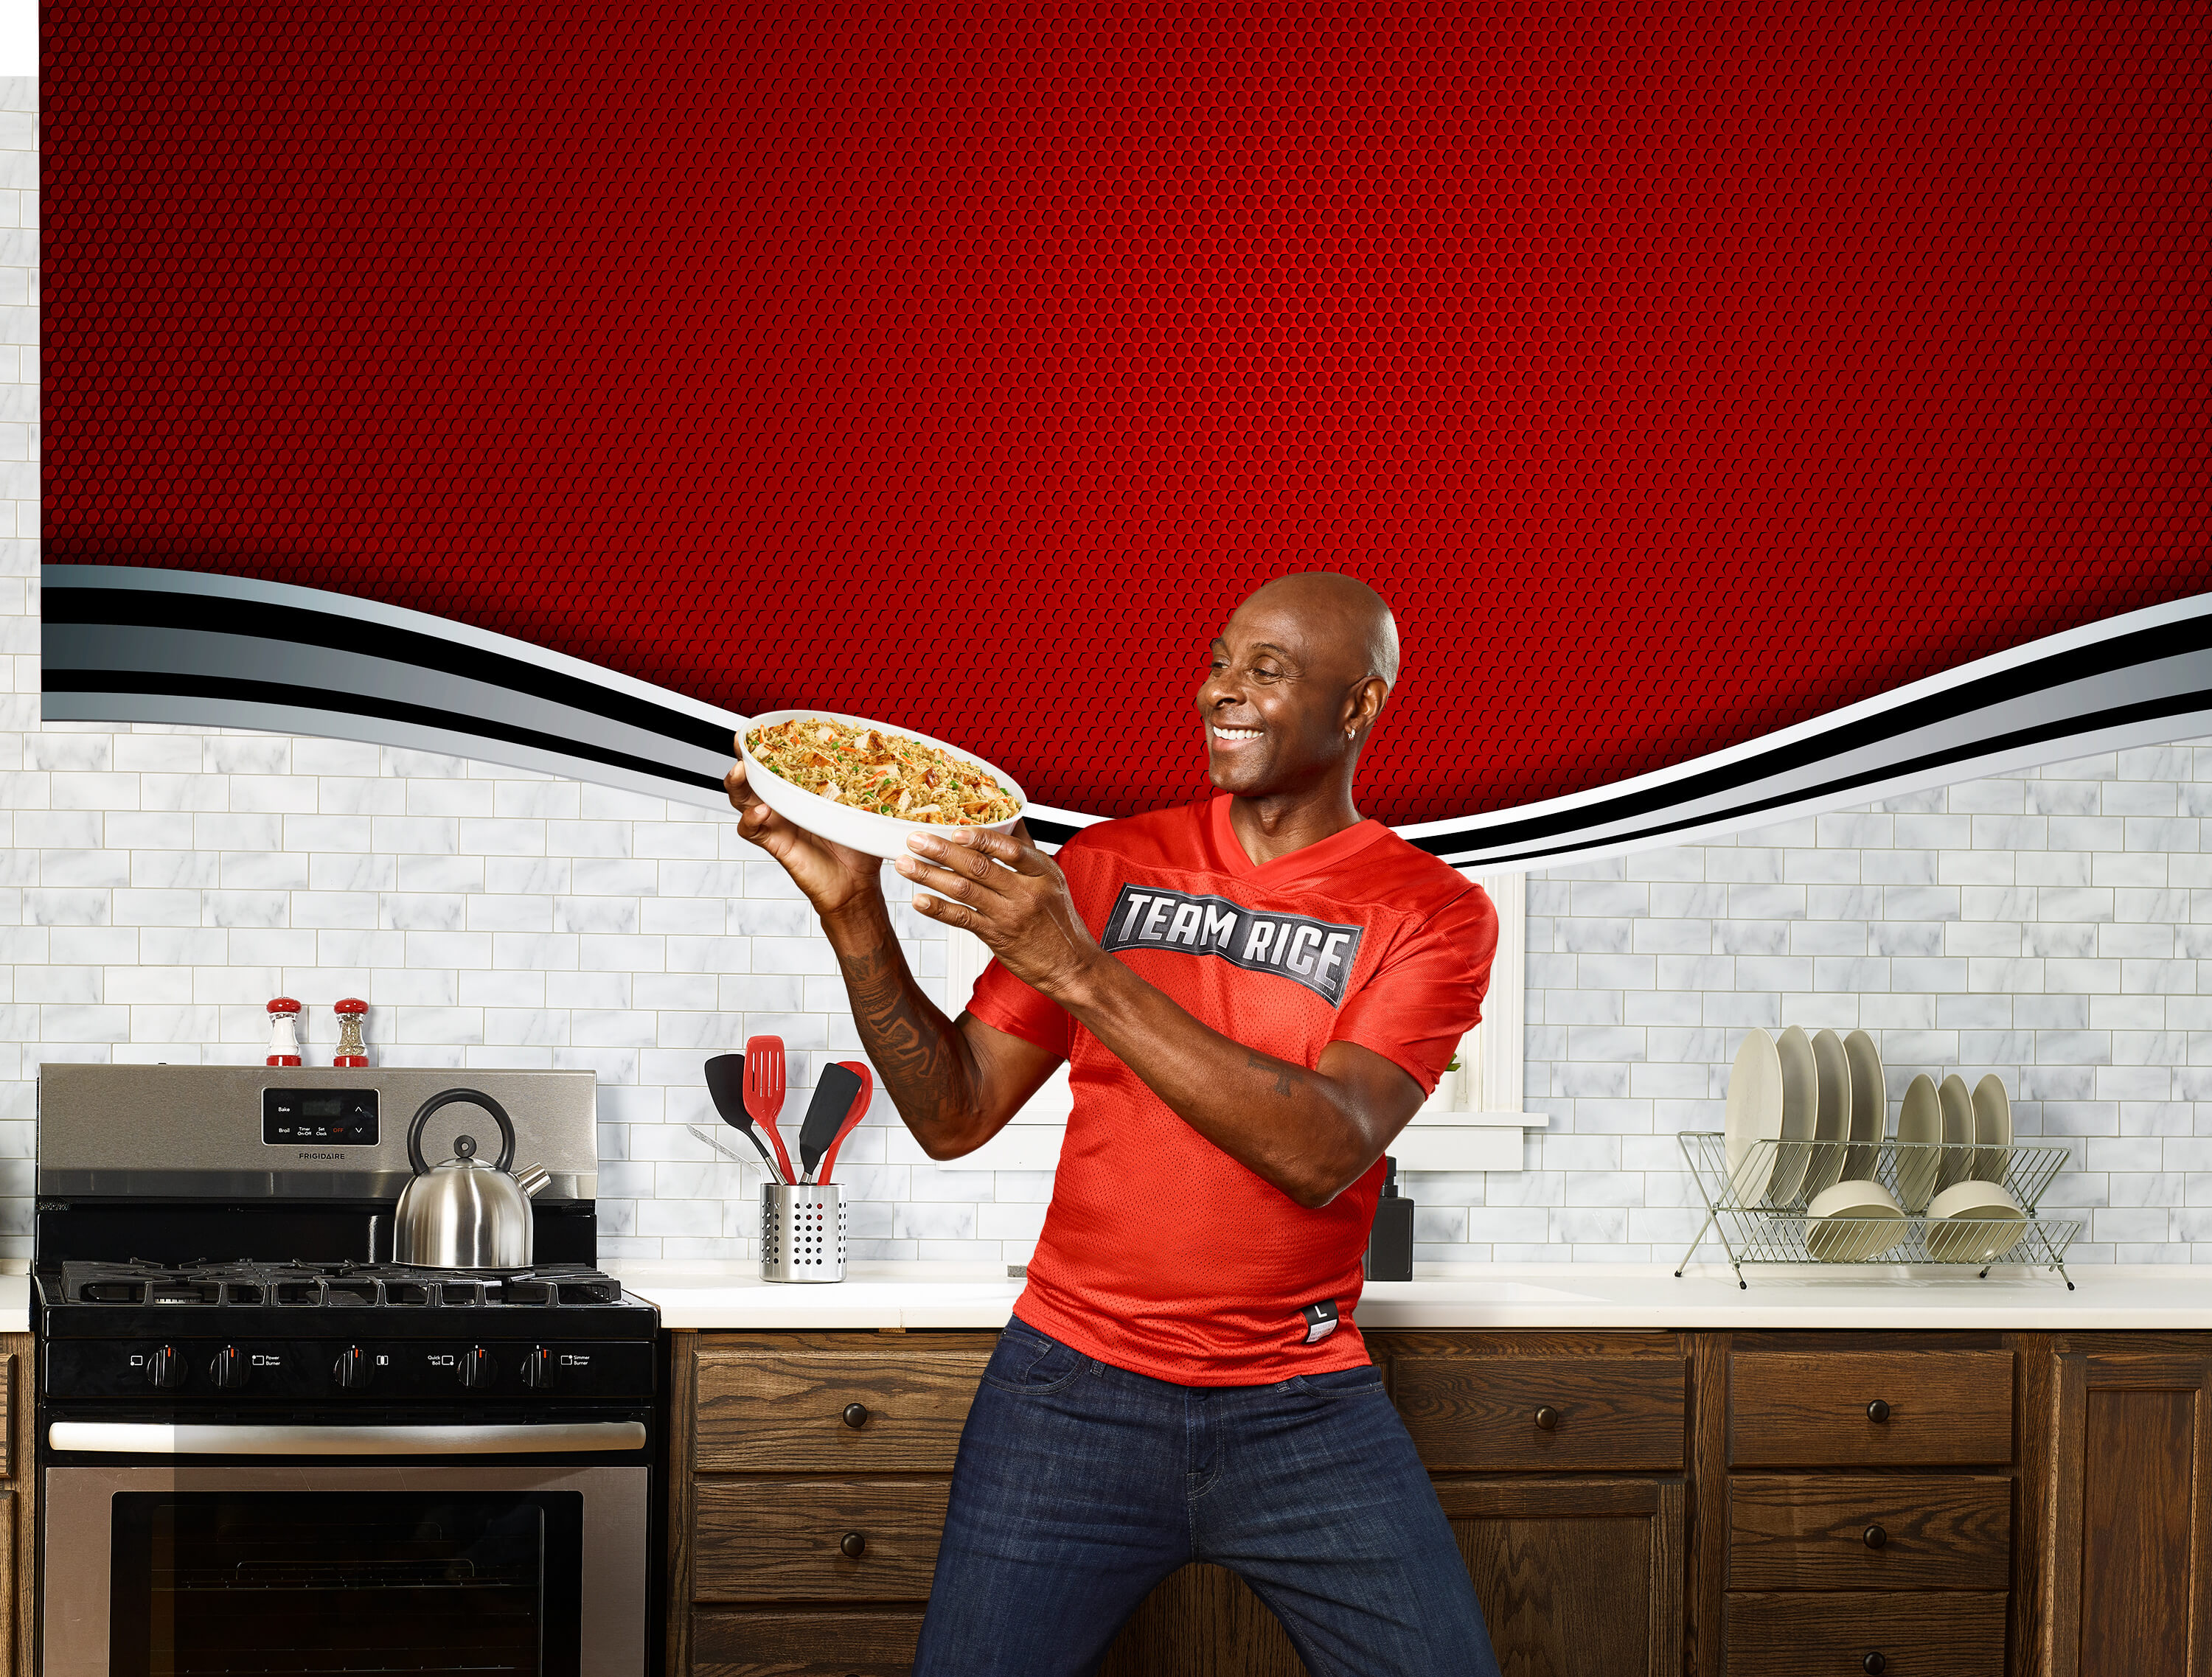 """The Marketing Arm flexed its creative, retail and shopper marketing, social media, and content capabilities when it teamed up with Rice-A-Roni, Pasta Roni, and NFL Hall of Famer Jerry Rice to form """"Team Rice."""""""